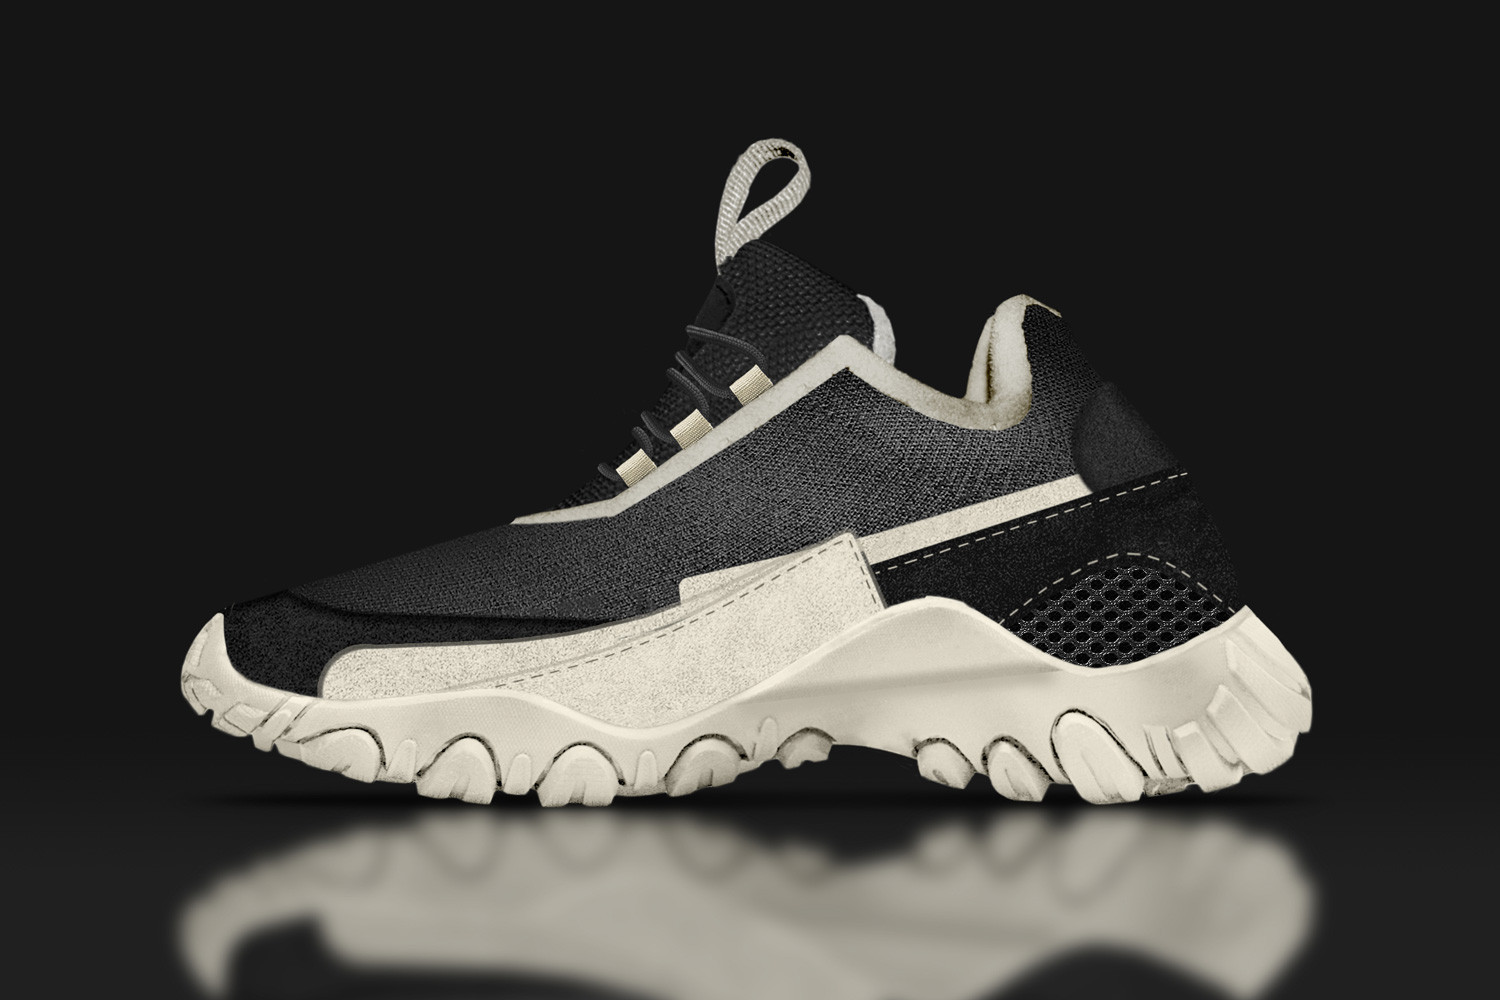 Chunky Sneakers Concept Designs Dad Shoes